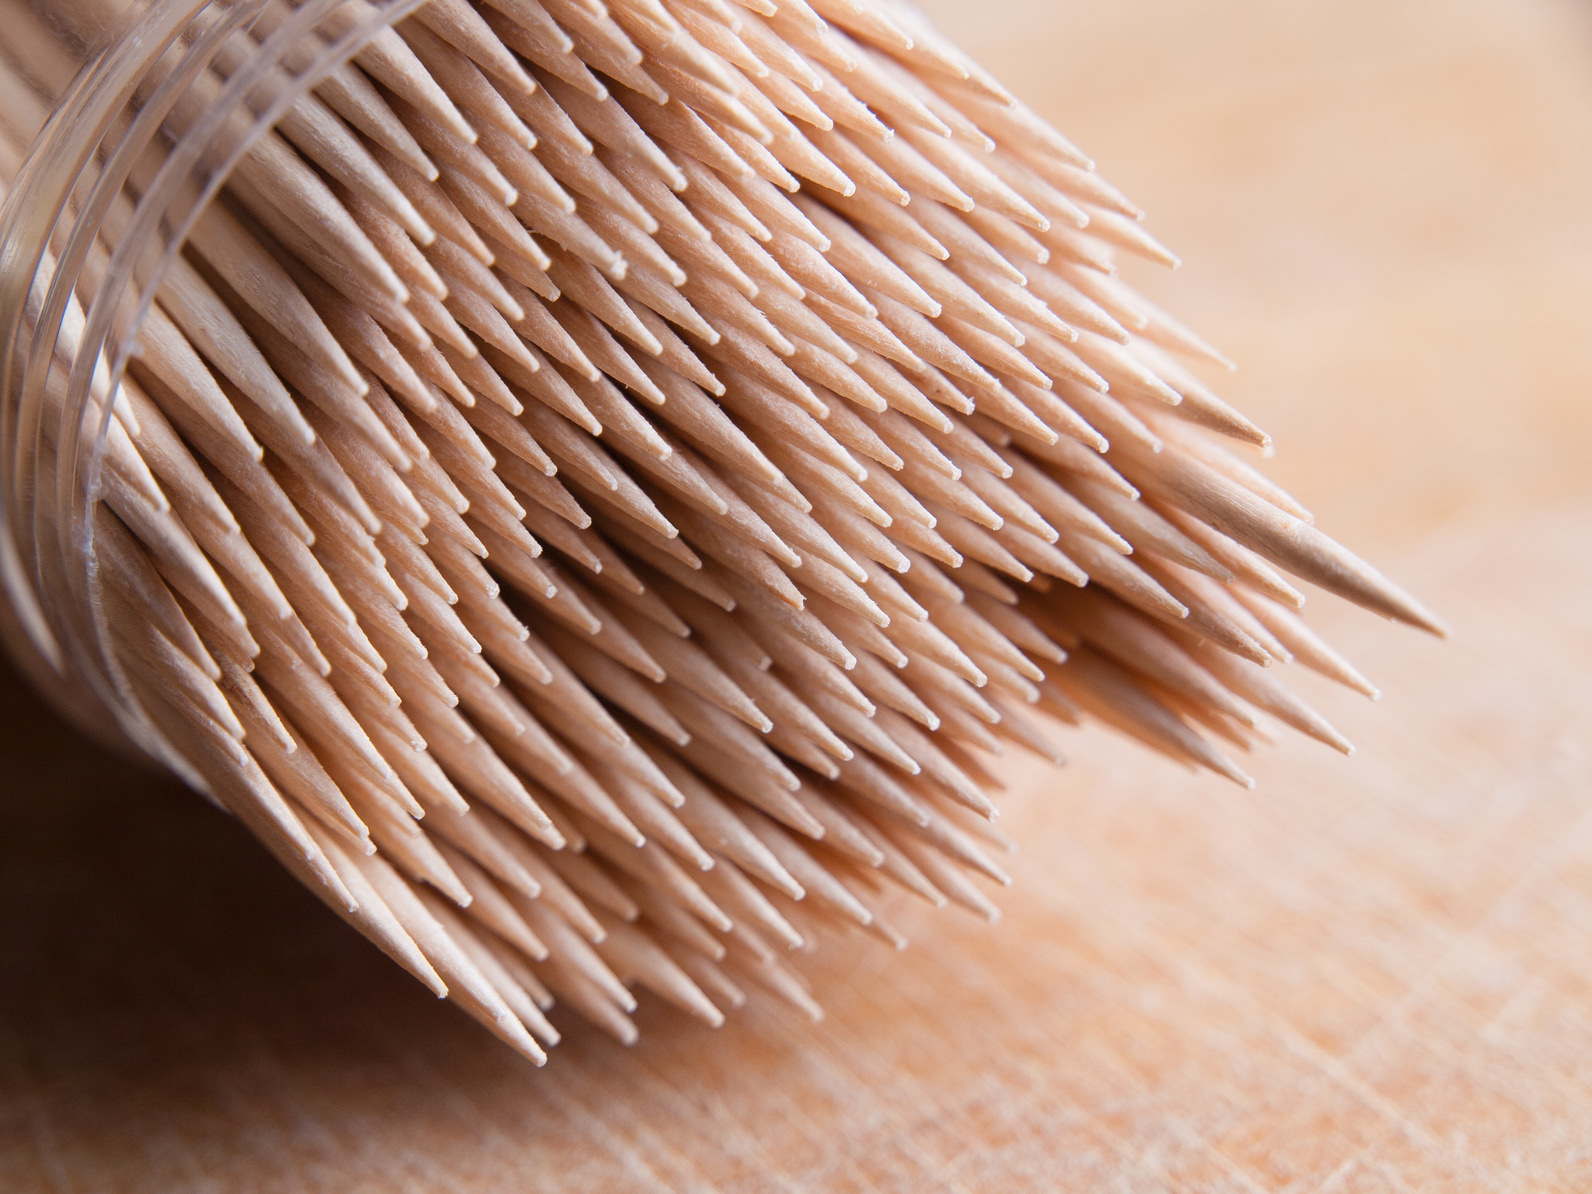 15-10-Are-Toothpick-Safe_65233854.jpg